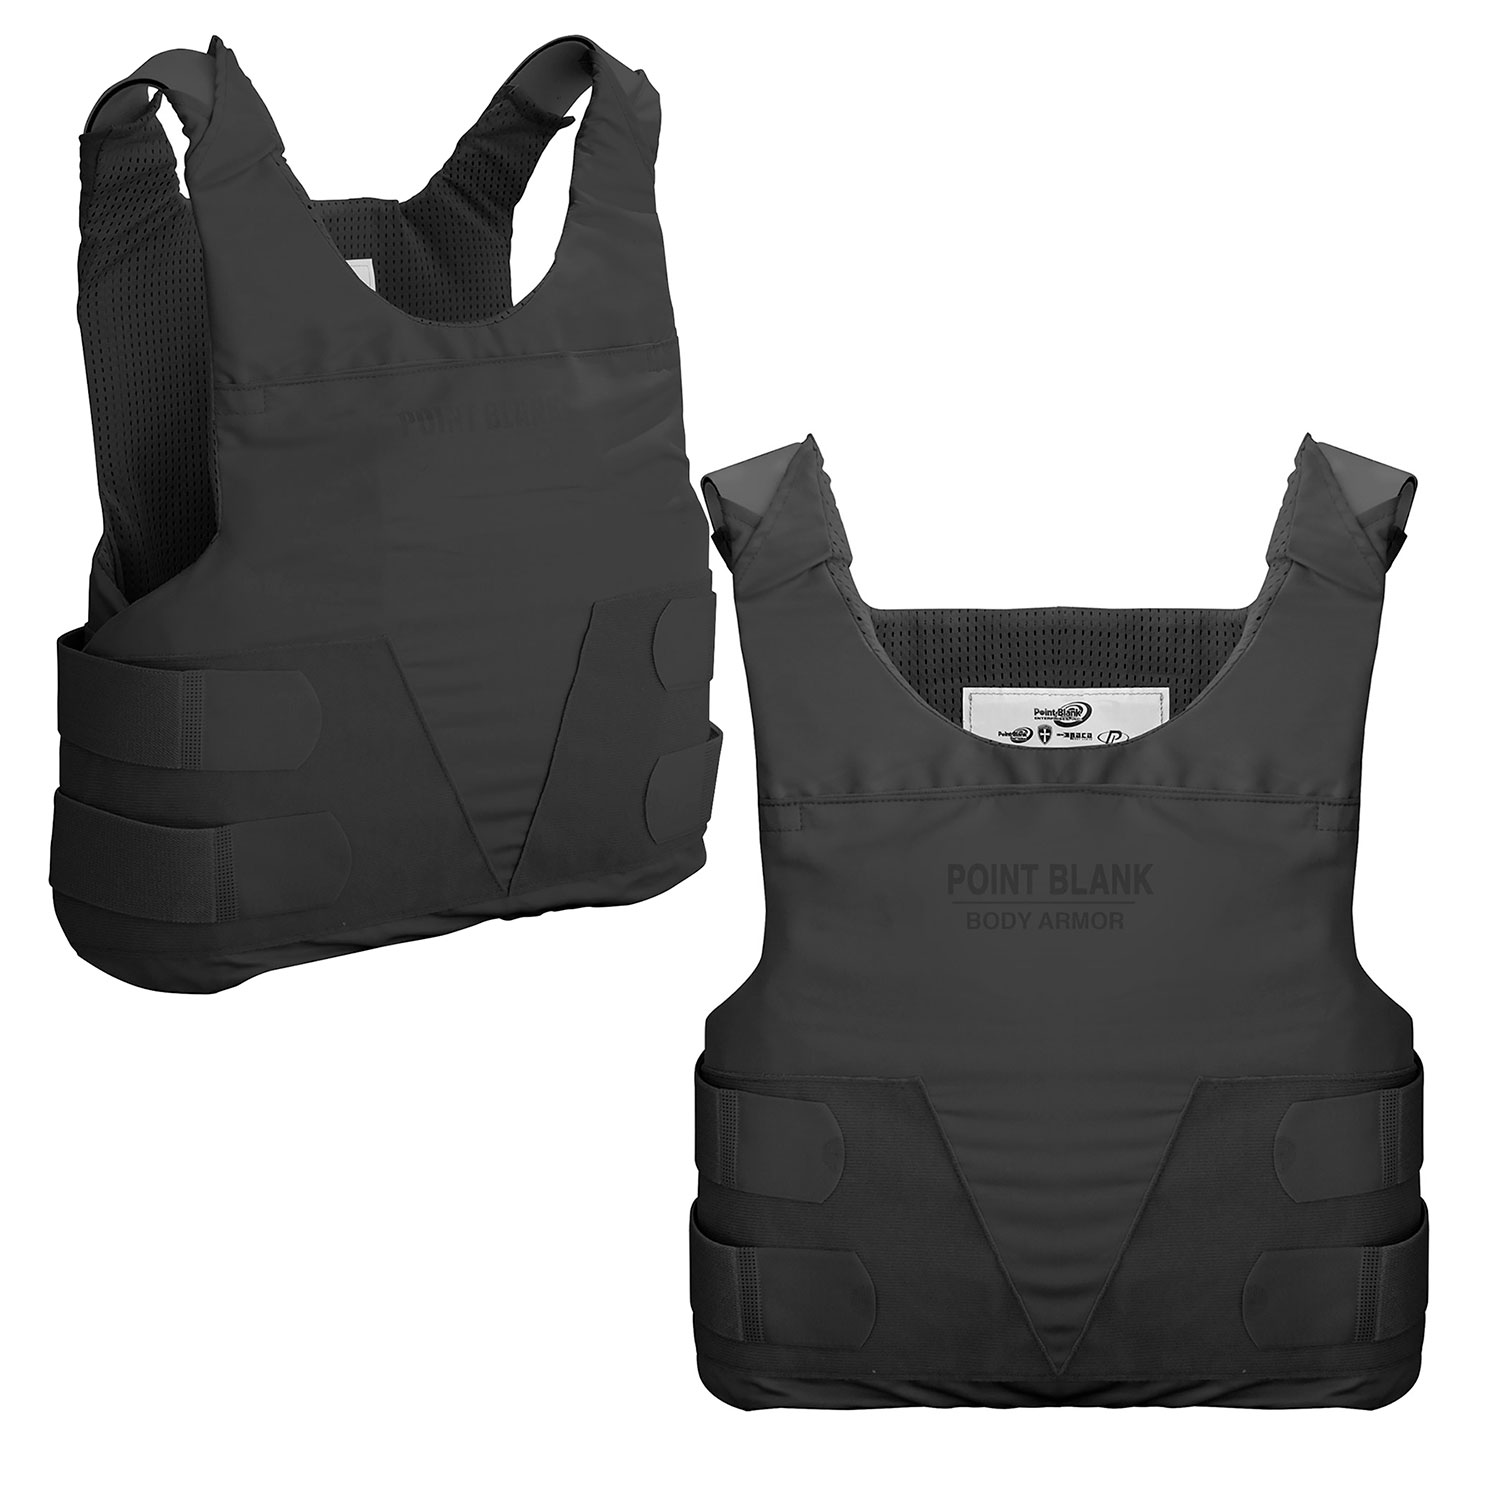 Point Blank FLXIIIA Body Armor with Two Hi Lite Carriers